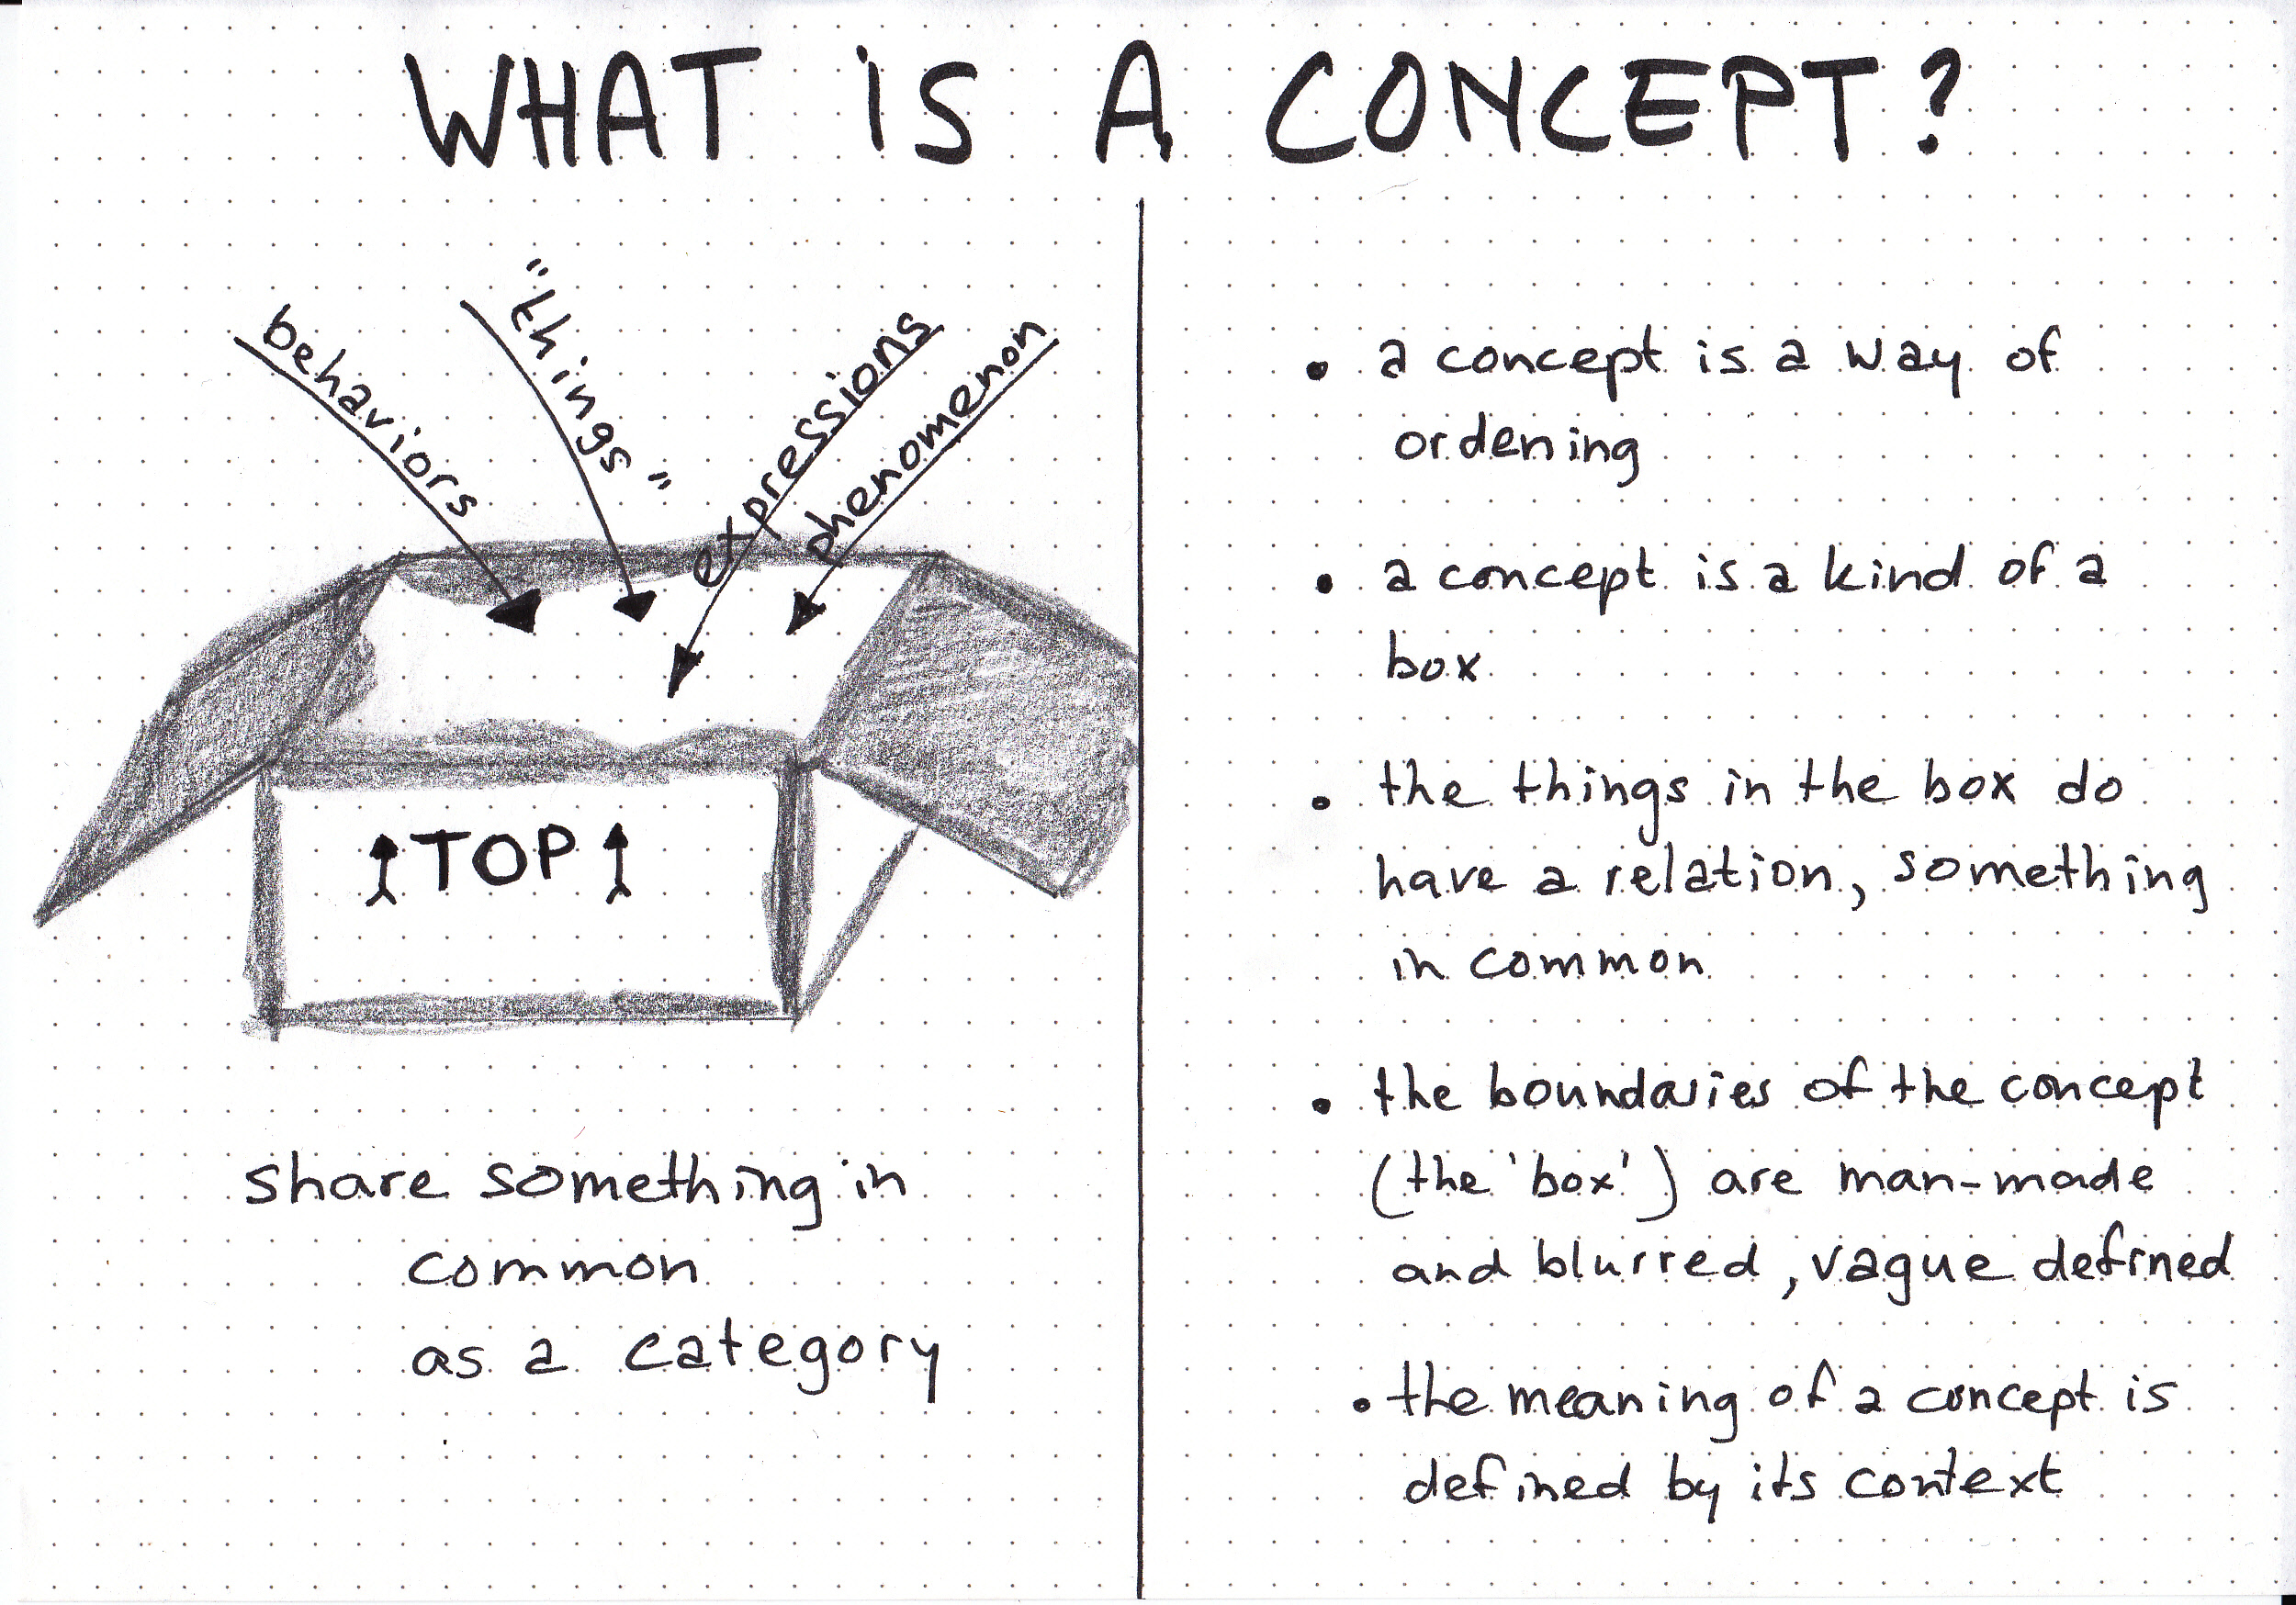 What is a concept? 71